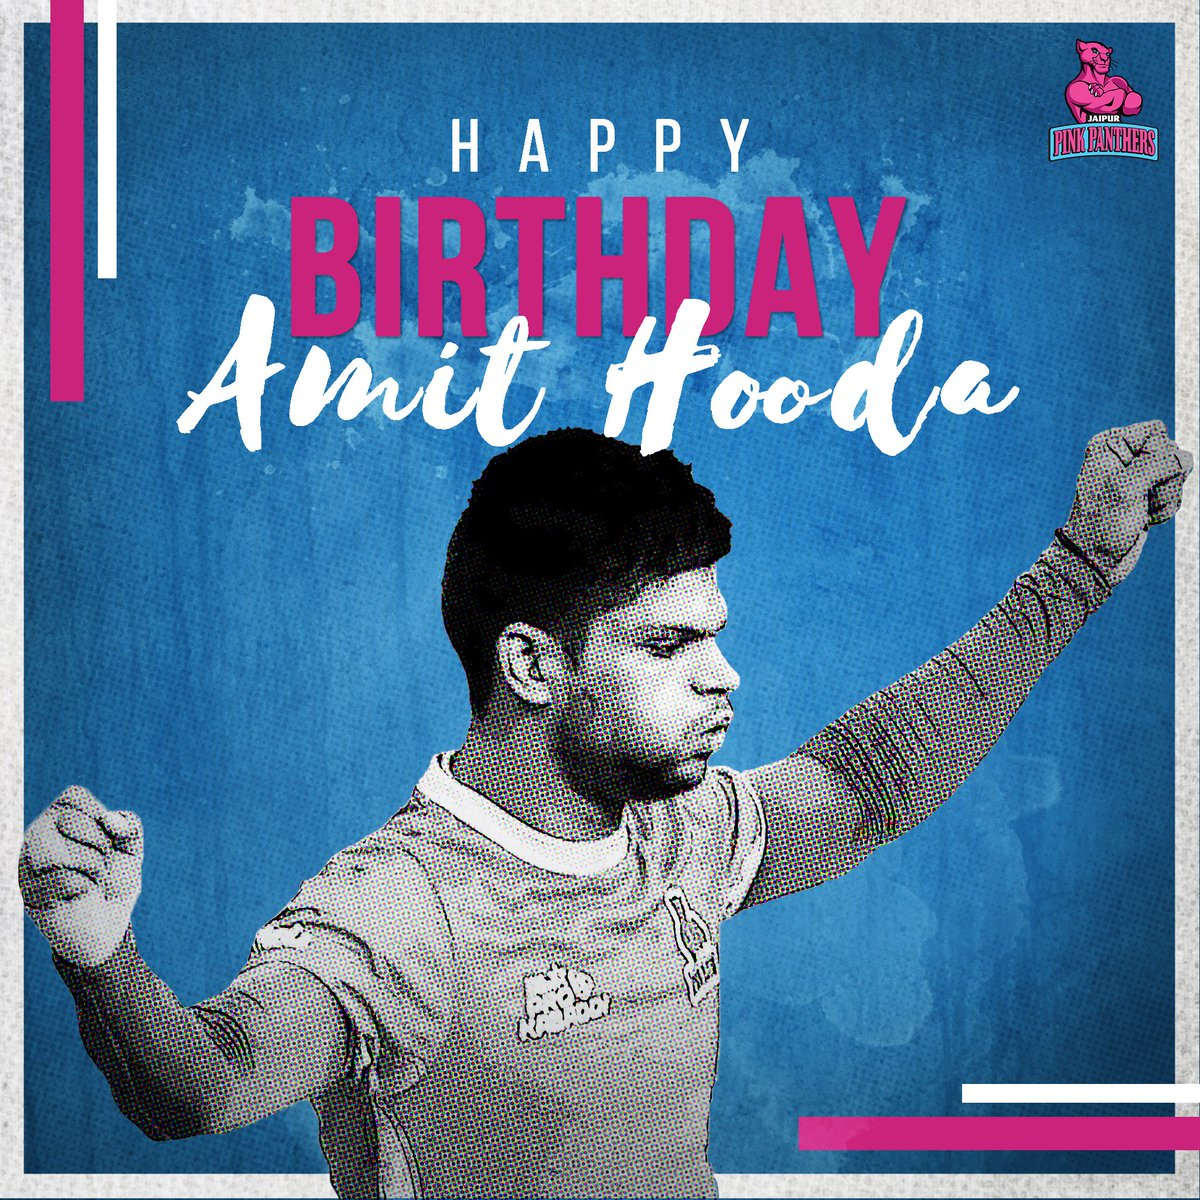 Wishing our fearless defender @AmitHoodajpp a very #HappyBirthday! Have a great season ahead!  #HappyBirthdayAmitHooda #AmitHooda #PantherSquad #Panthers #TopCats #JaipurPinkPanthers #JPP #Jaipur #Kabaddi #ProKabaddi